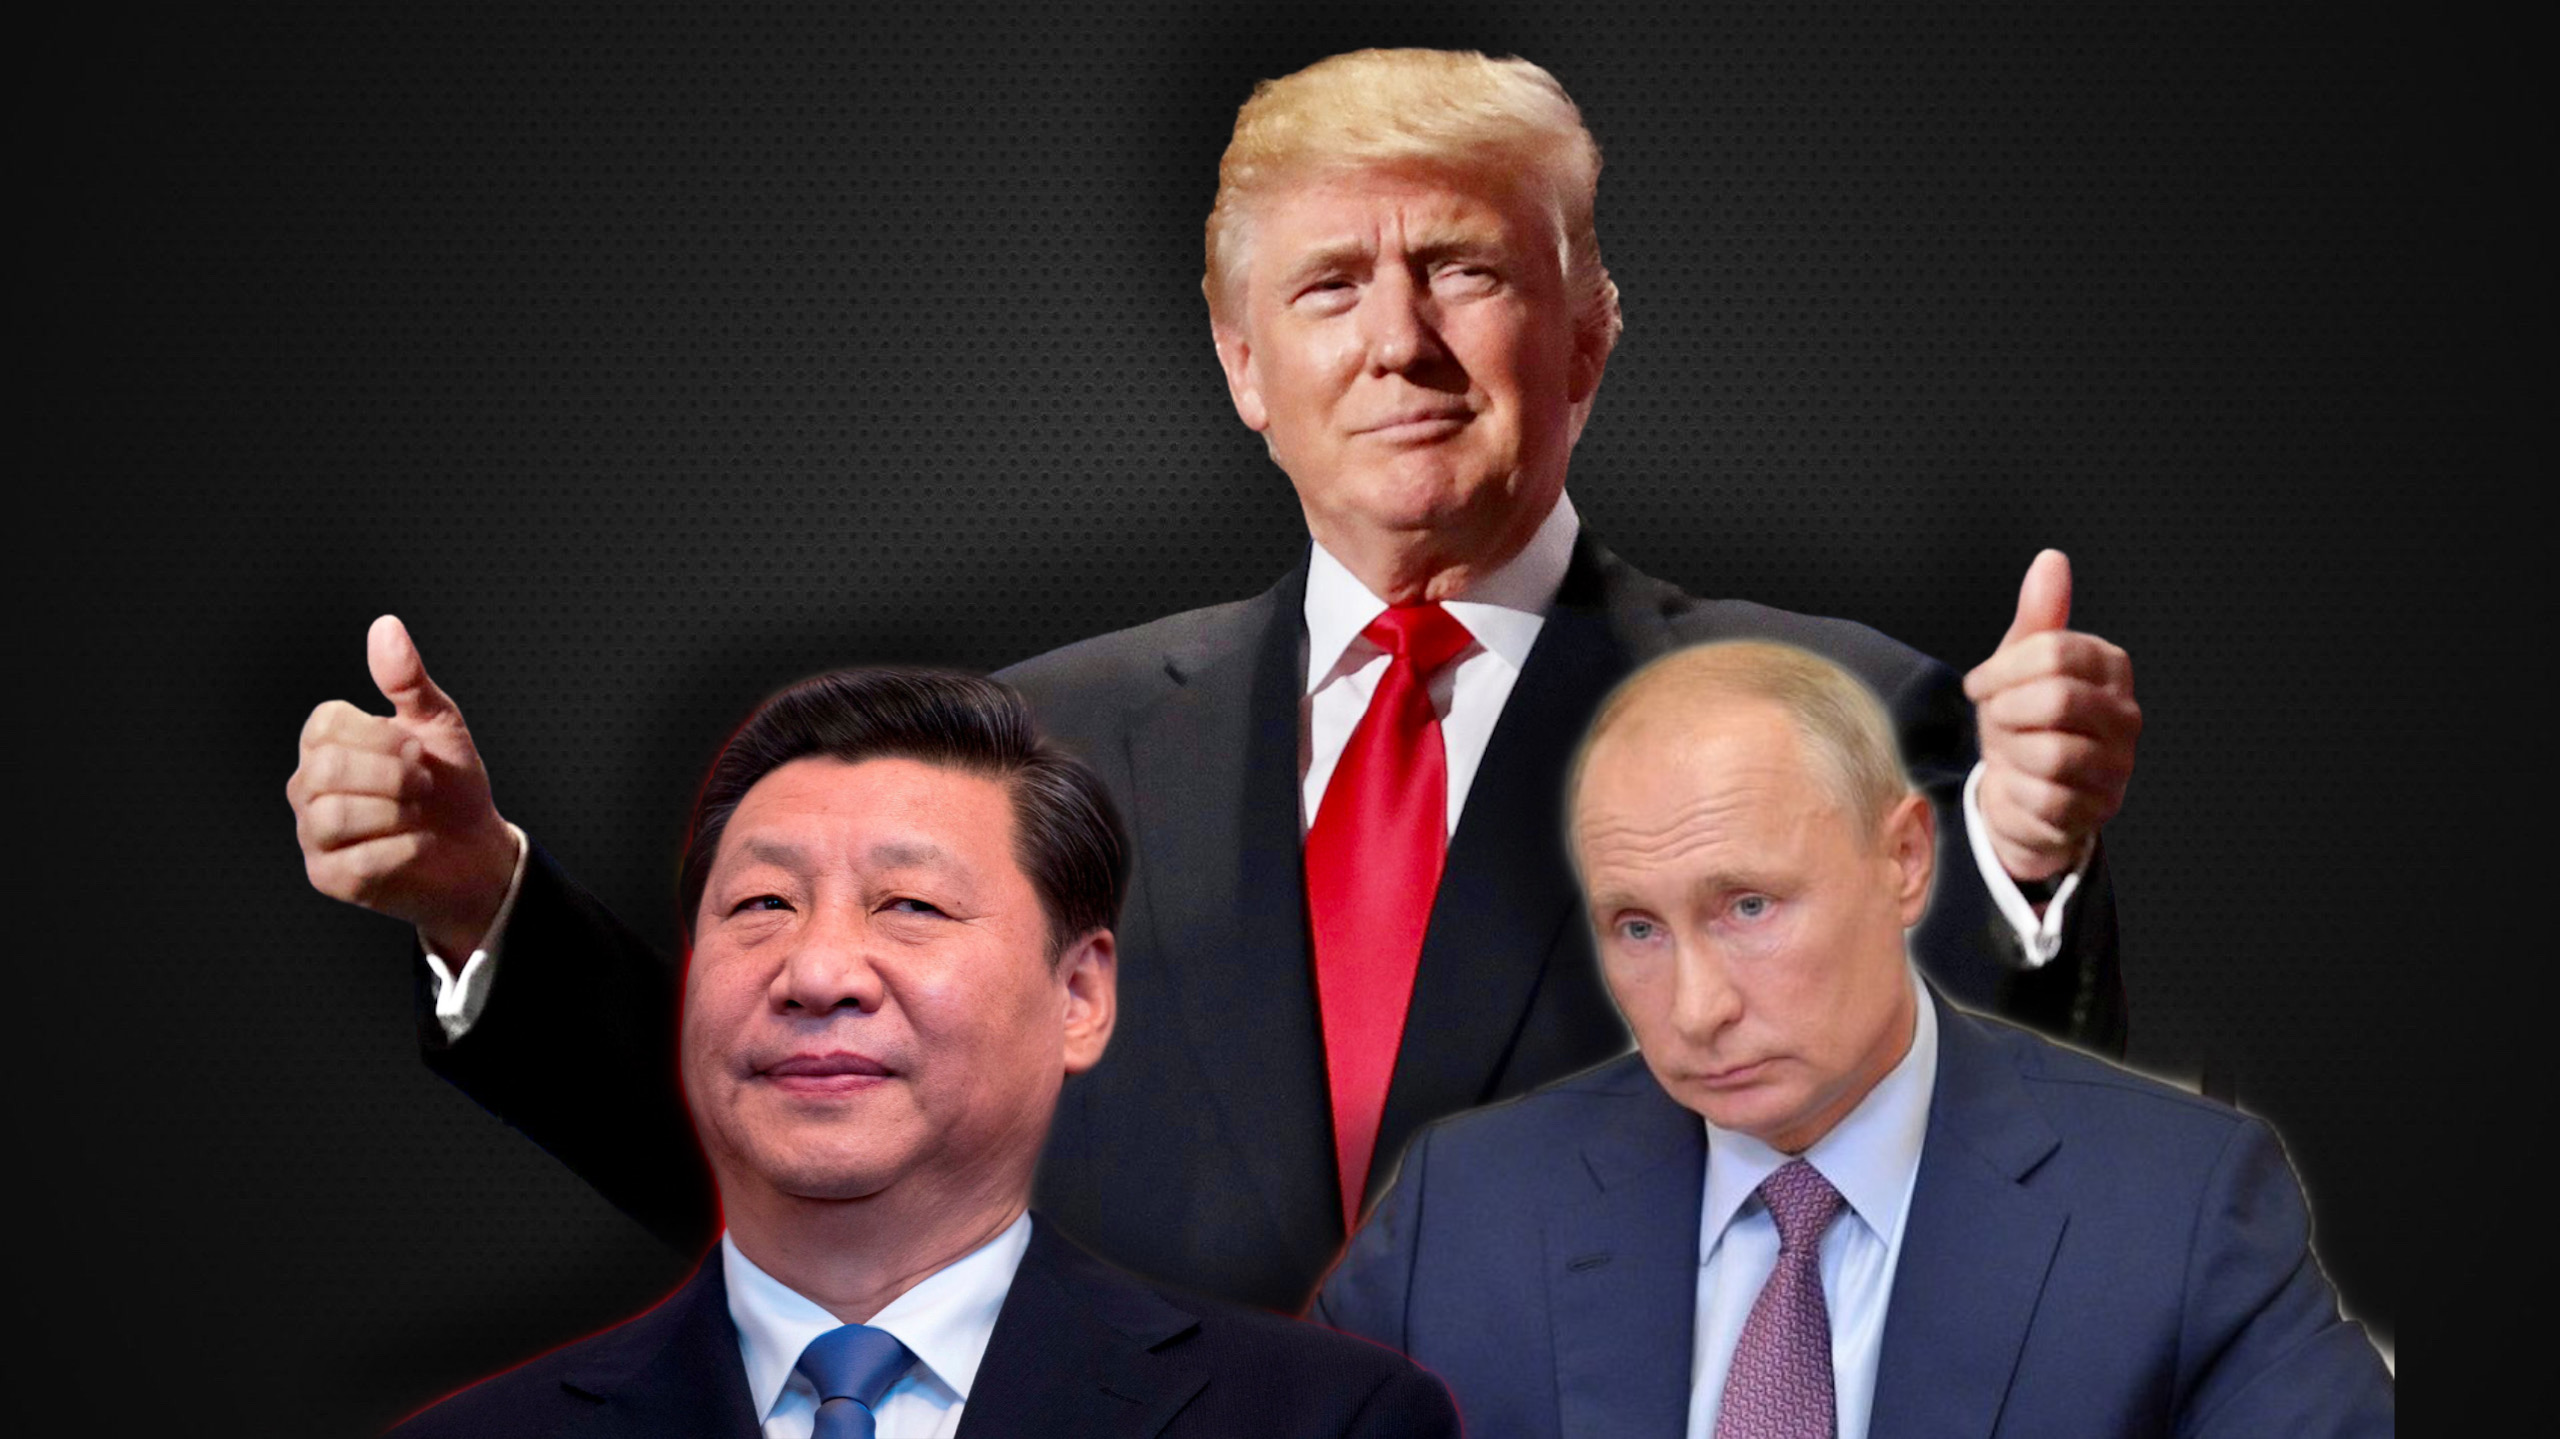 As President Trump Attempts to Protect the US from Foreign Entities – Democrats, Big Tech, Big Media and Big Finance Are Aligning with These Entities Against President Trump